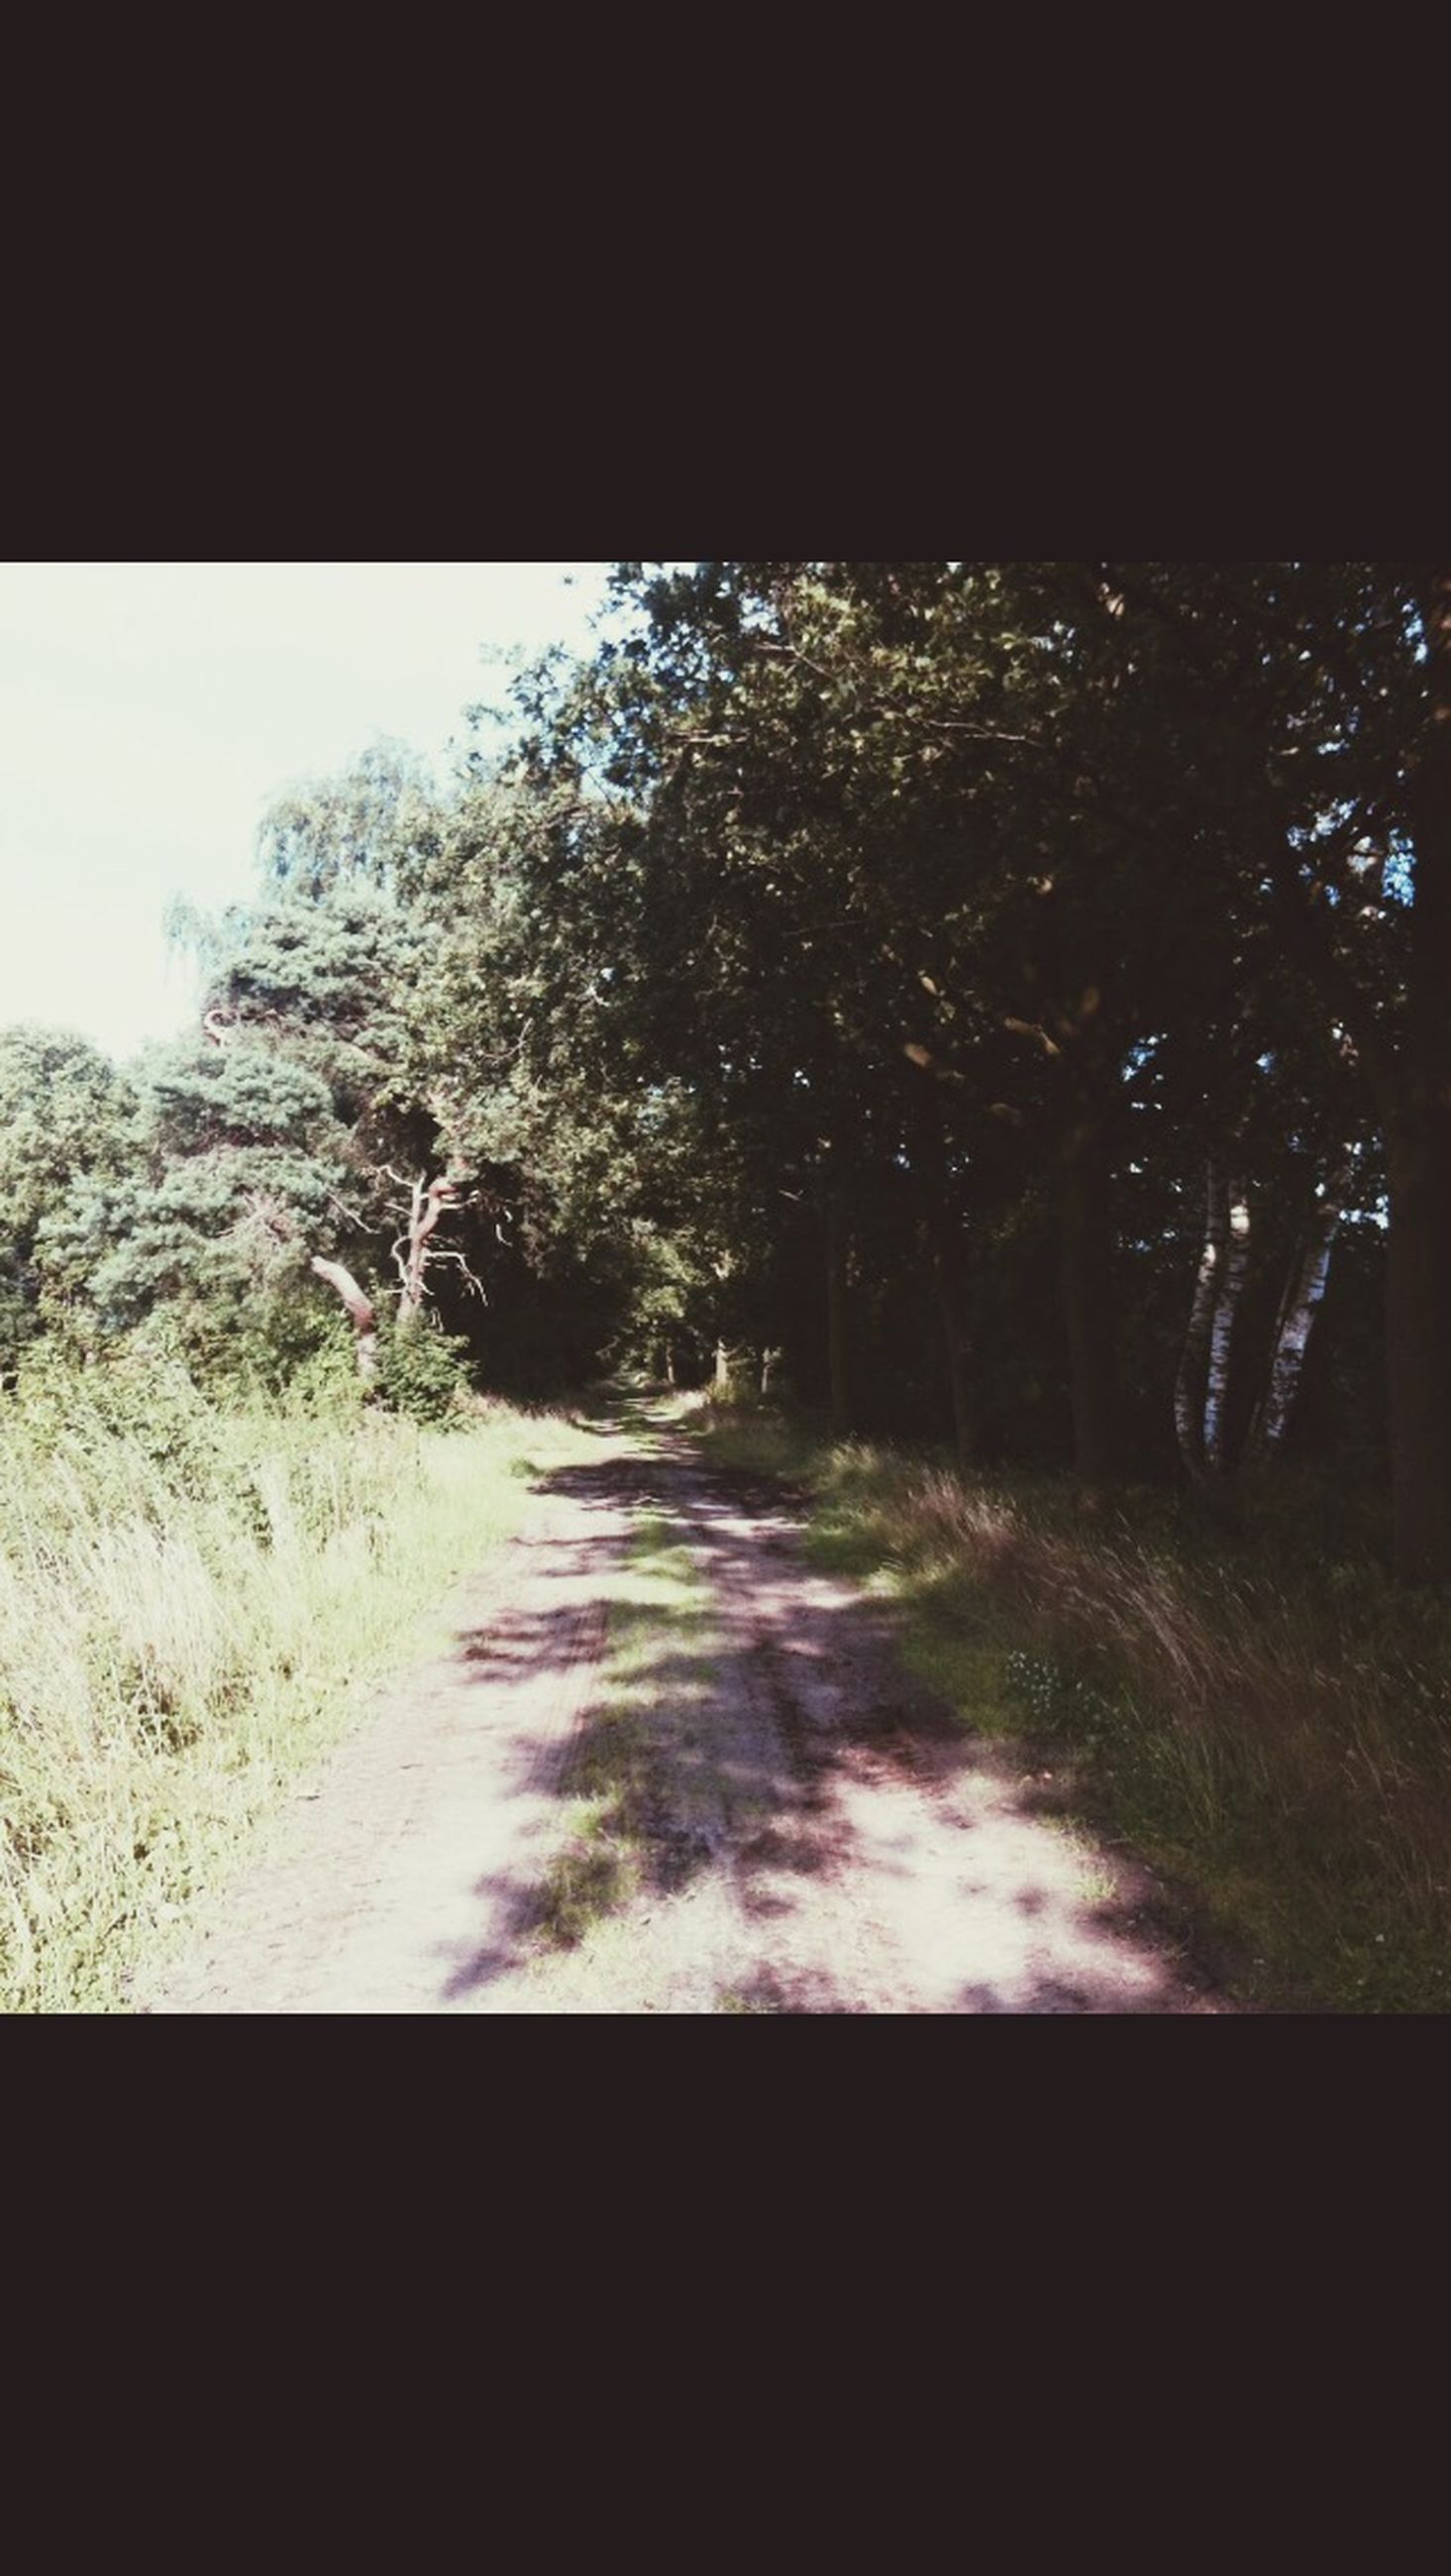 tree, the way forward, road, transportation, diminishing perspective, transfer print, auto post production filter, street, vanishing point, tranquility, nature, growth, sky, tranquil scene, country road, outdoors, no people, empty road, day, sunlight